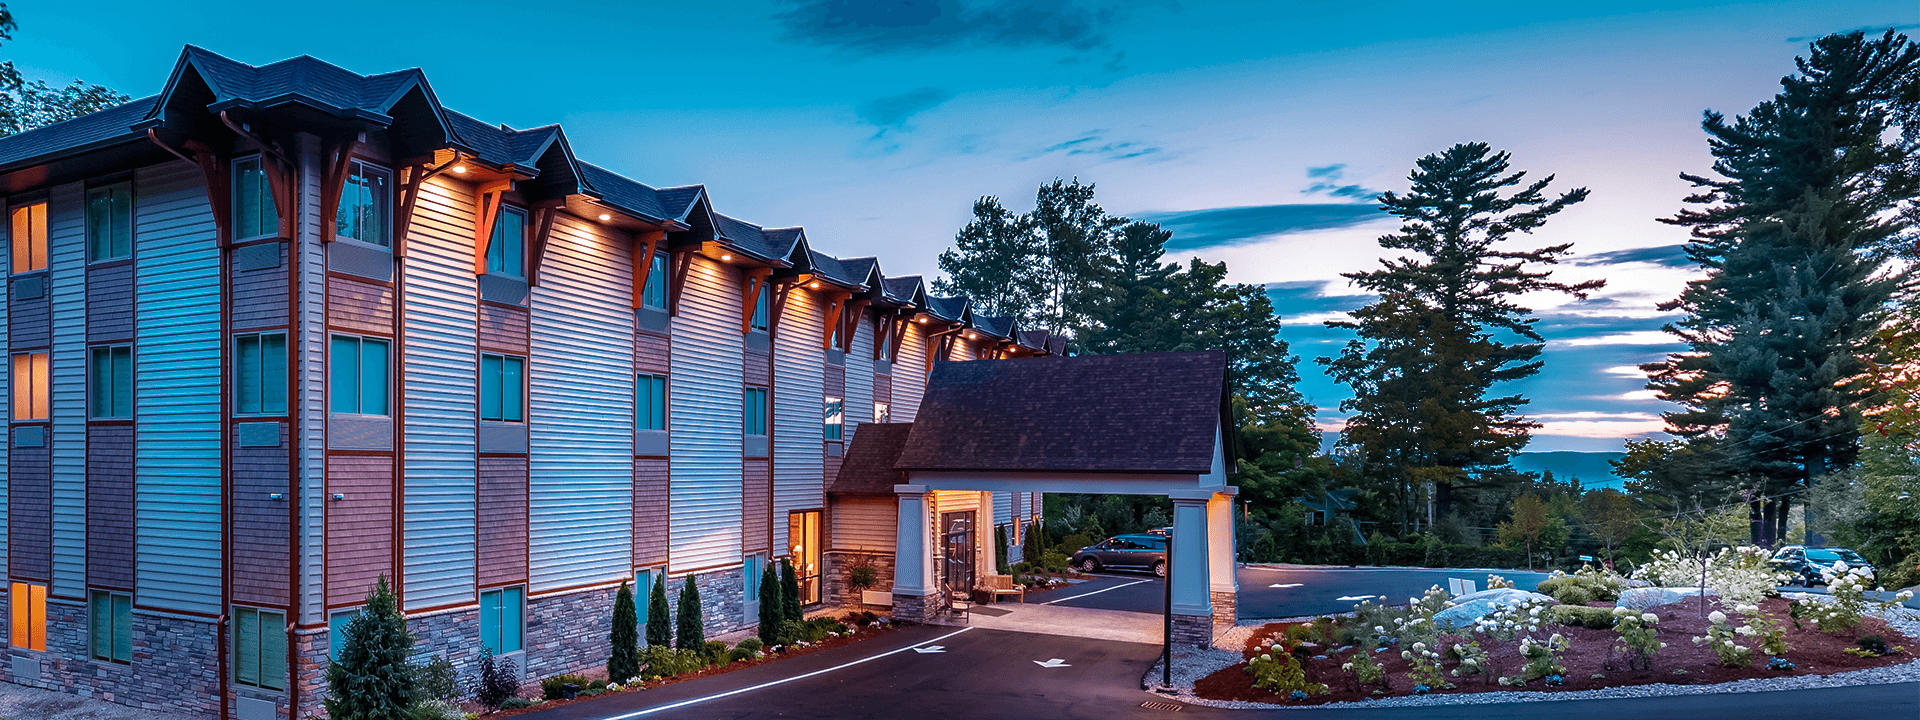 Arlington Hotel - Kosher Luxury Hotel in New Hampshire